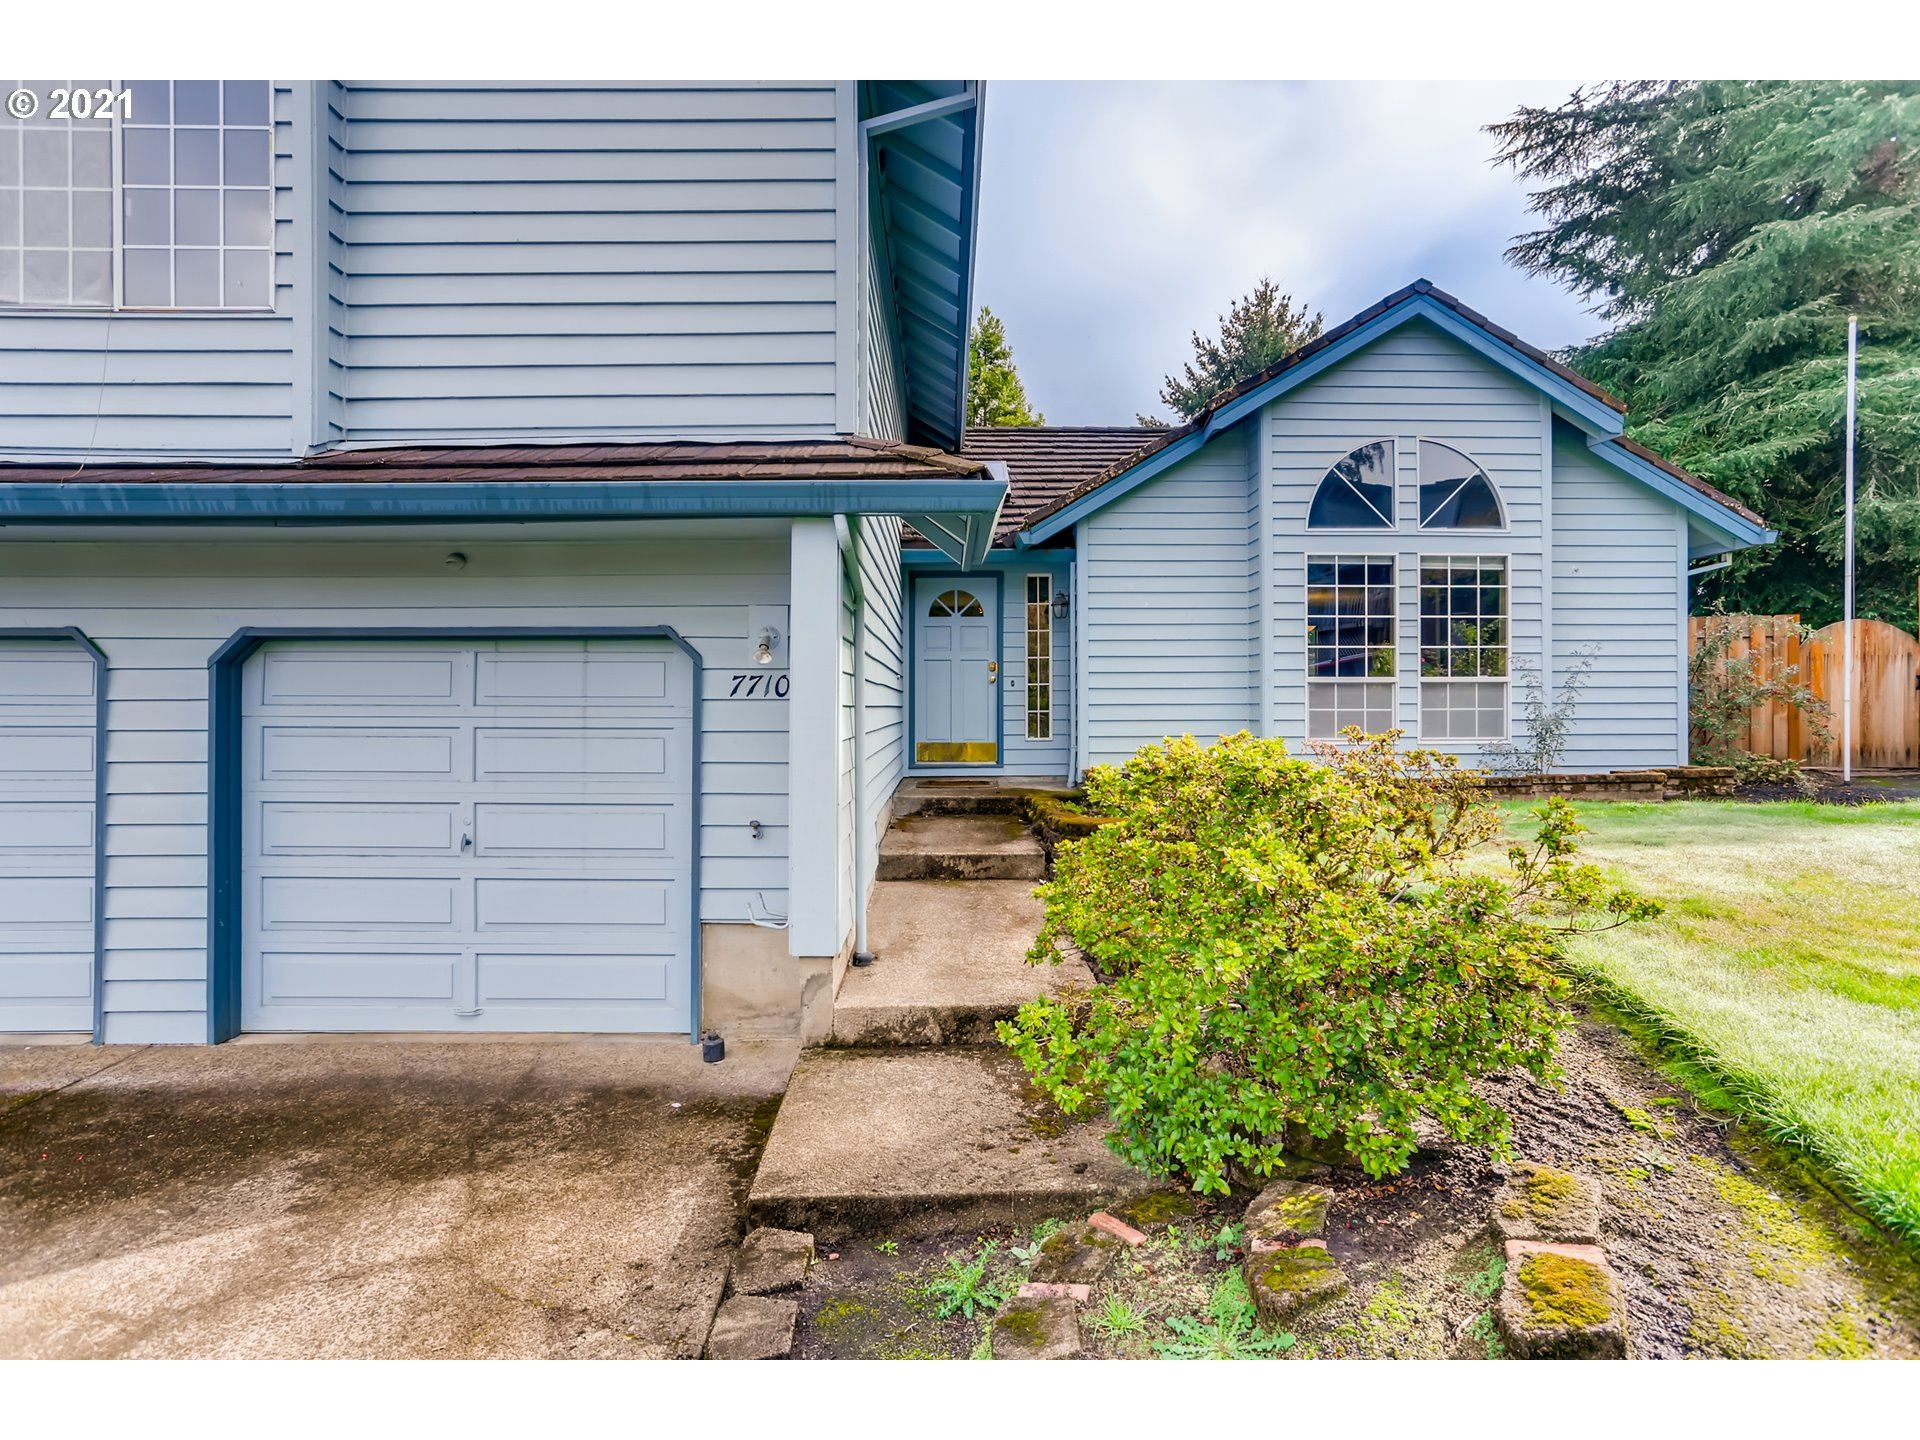 Photo of 7710 SW 184TH AVE, Aloha, OR 97007 (MLS # 21269846)